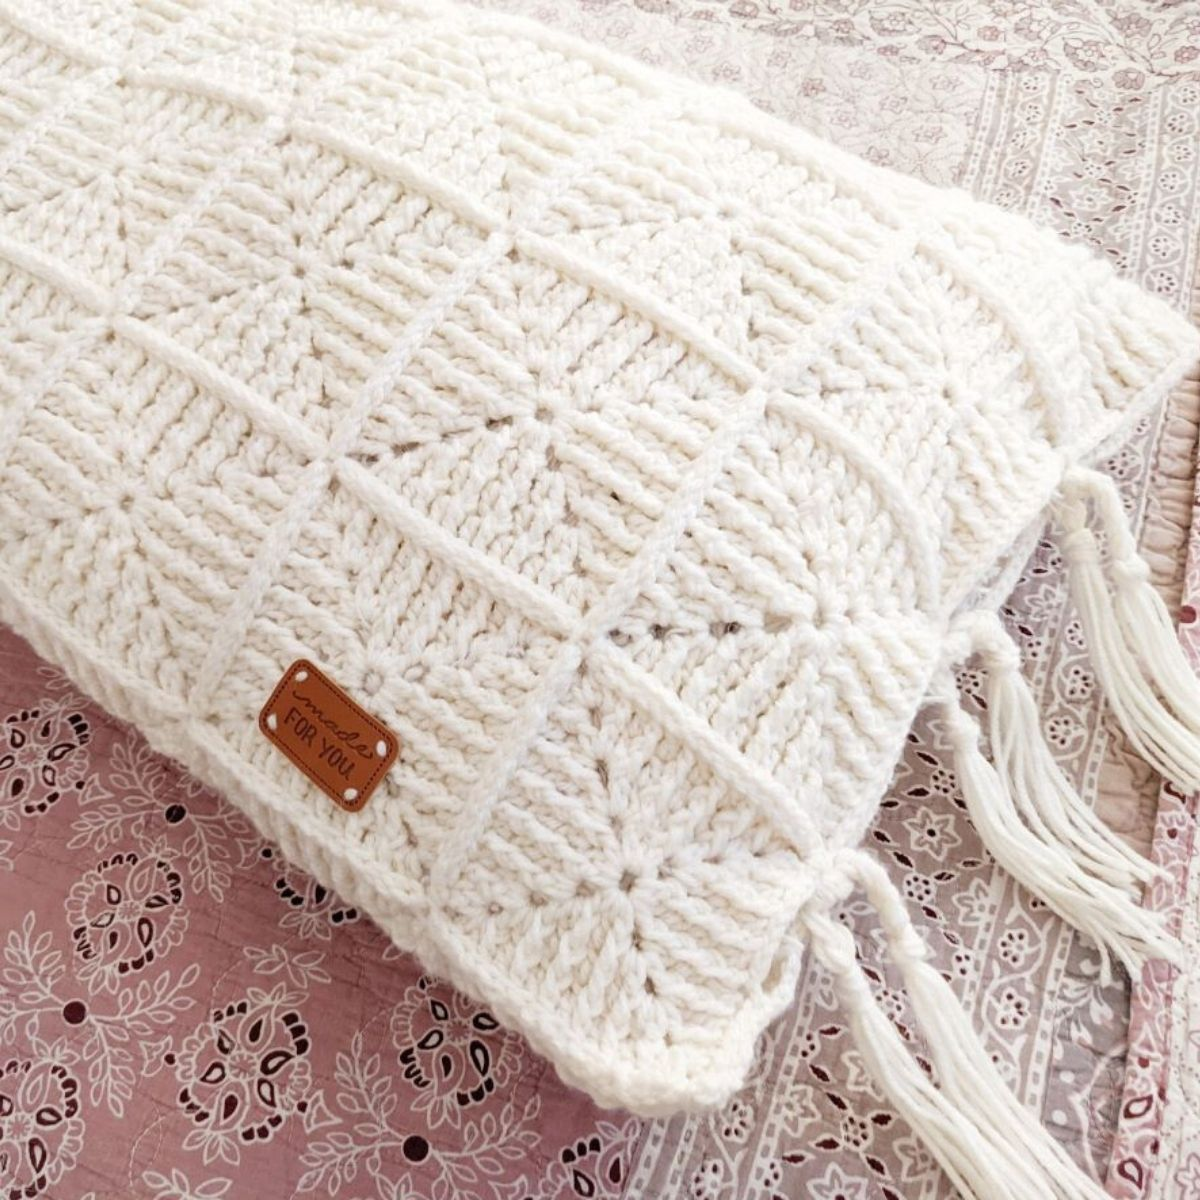 How to Crochet a Body Pillow with Granny Squares